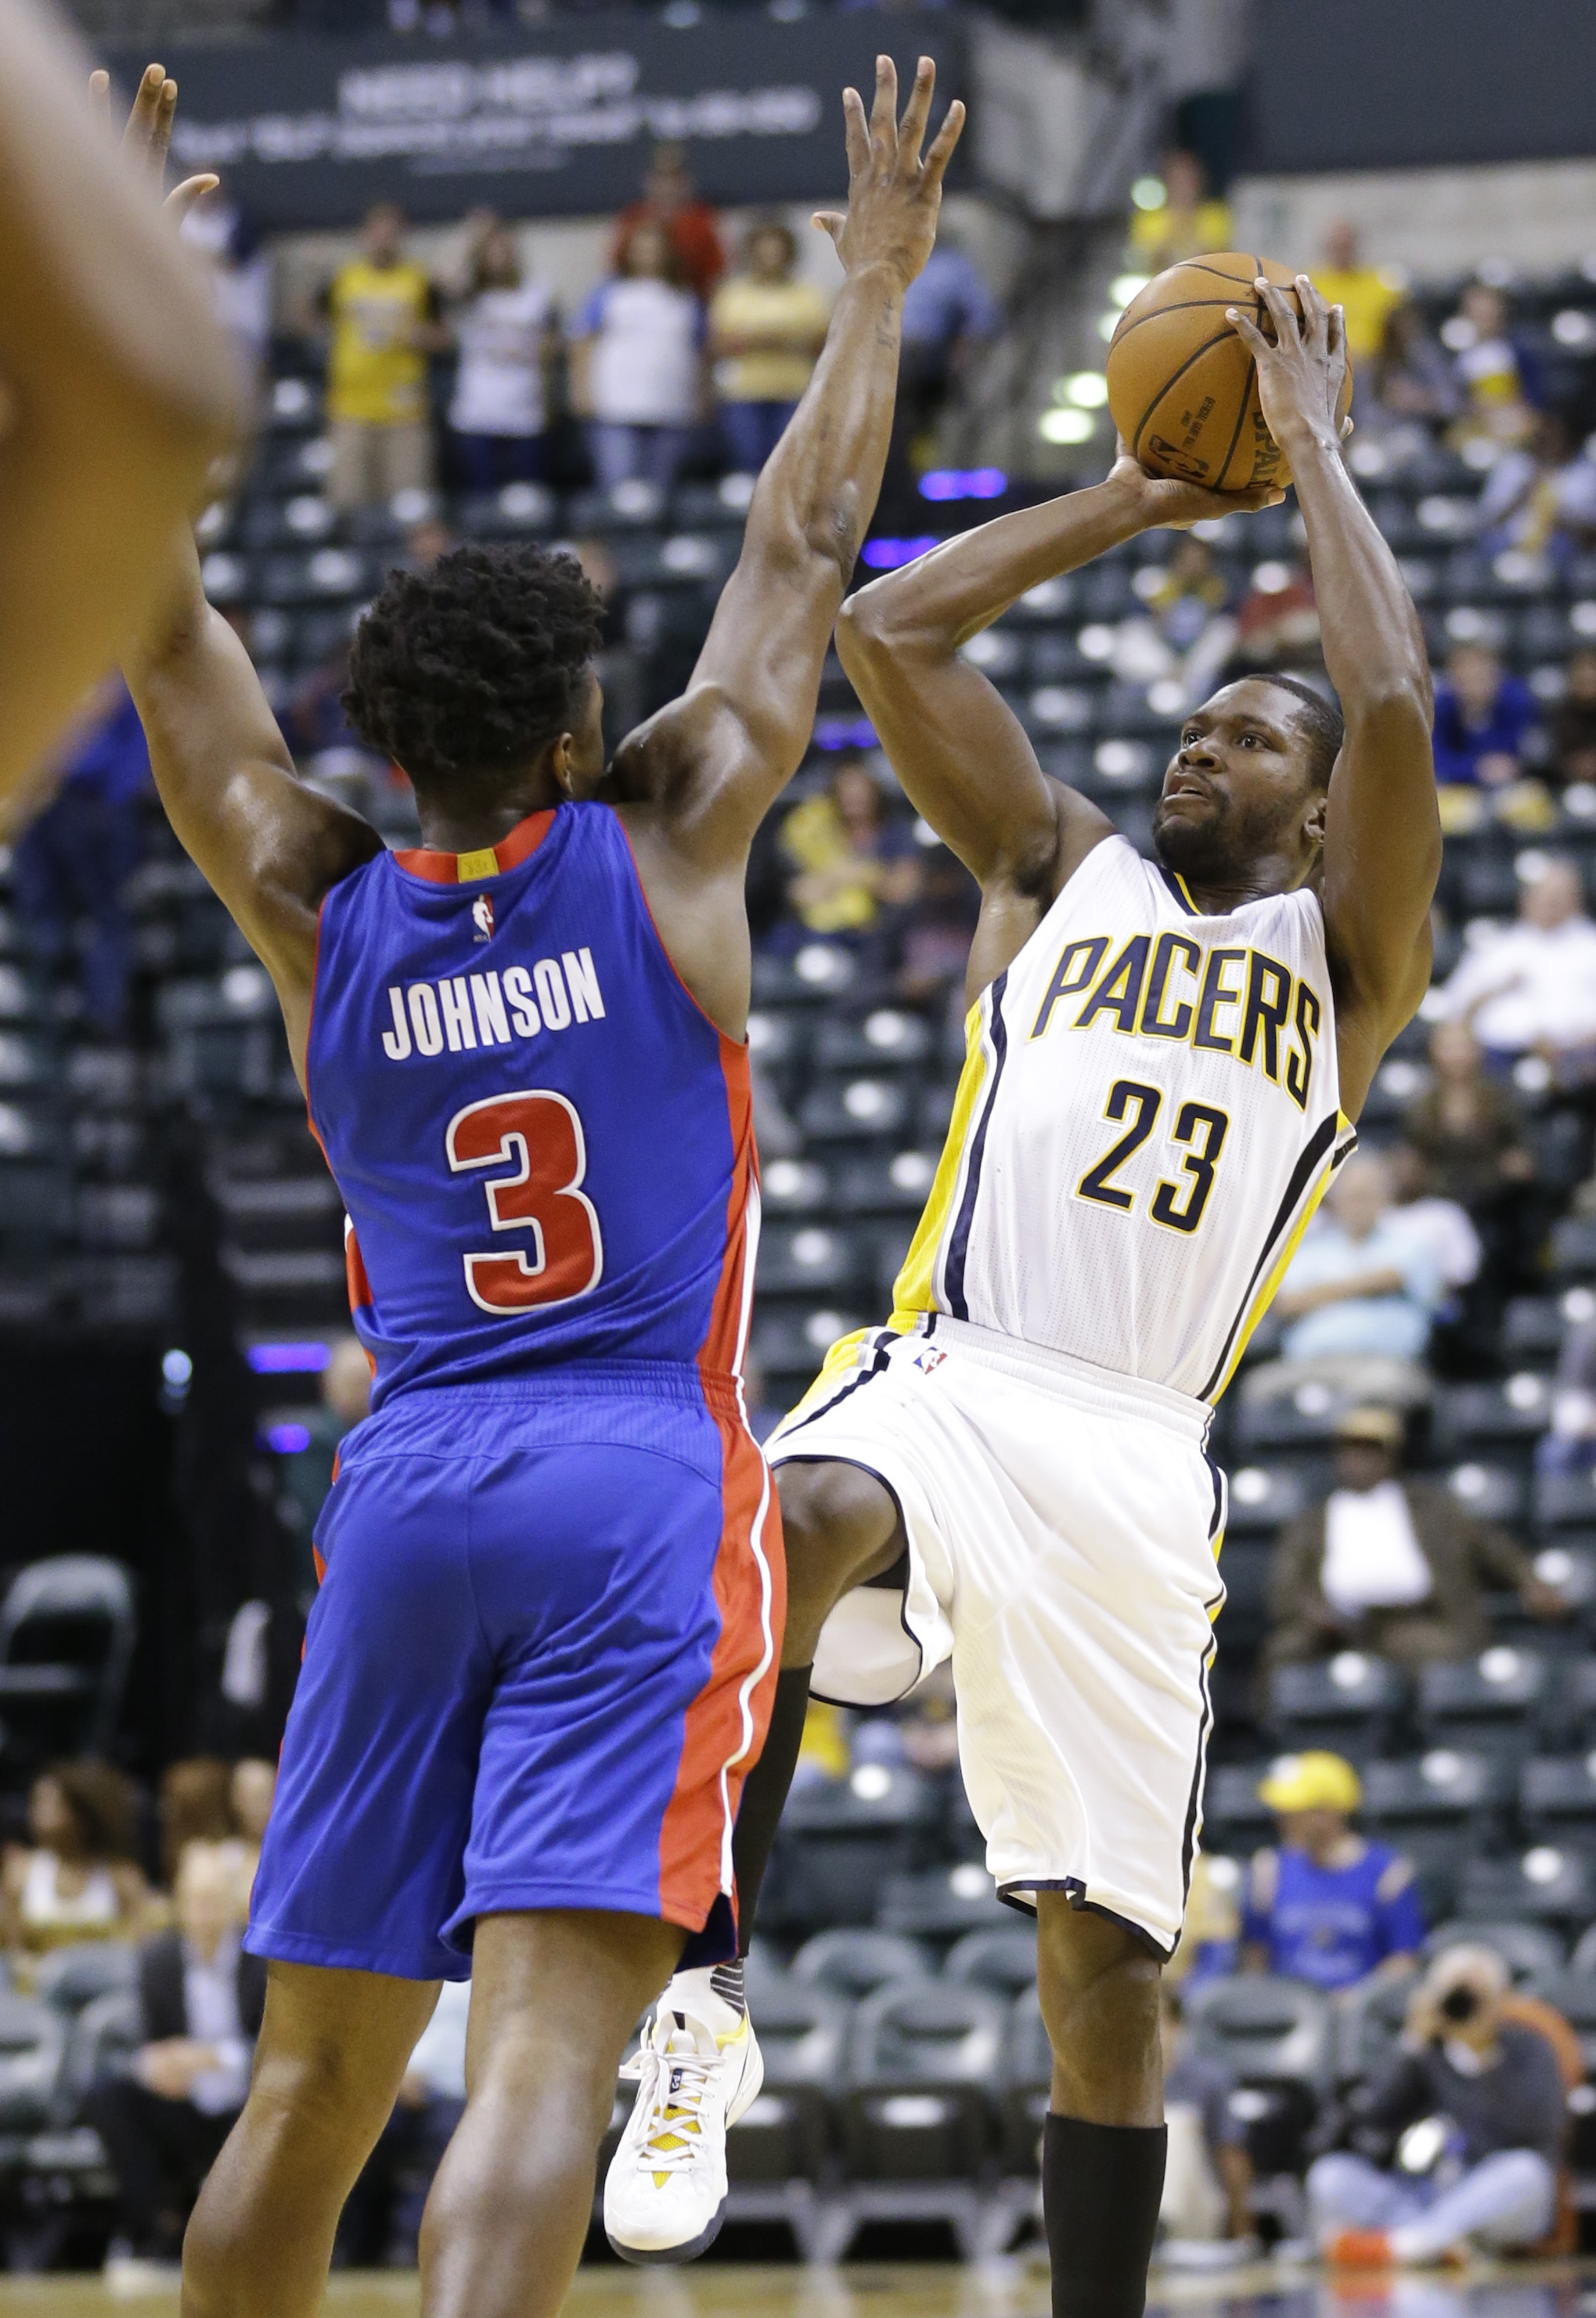 Indiana Pacers guard Toney Douglas (23) shoots over Detroit Pistons forward Stanley Johnson (3) during the second half of an NBA preseason basketball game in Indianapolis, Tuesday, Oct. 13, 2015. The Pacers defeated the Pistons 101-97. (AP Photo/Michael C